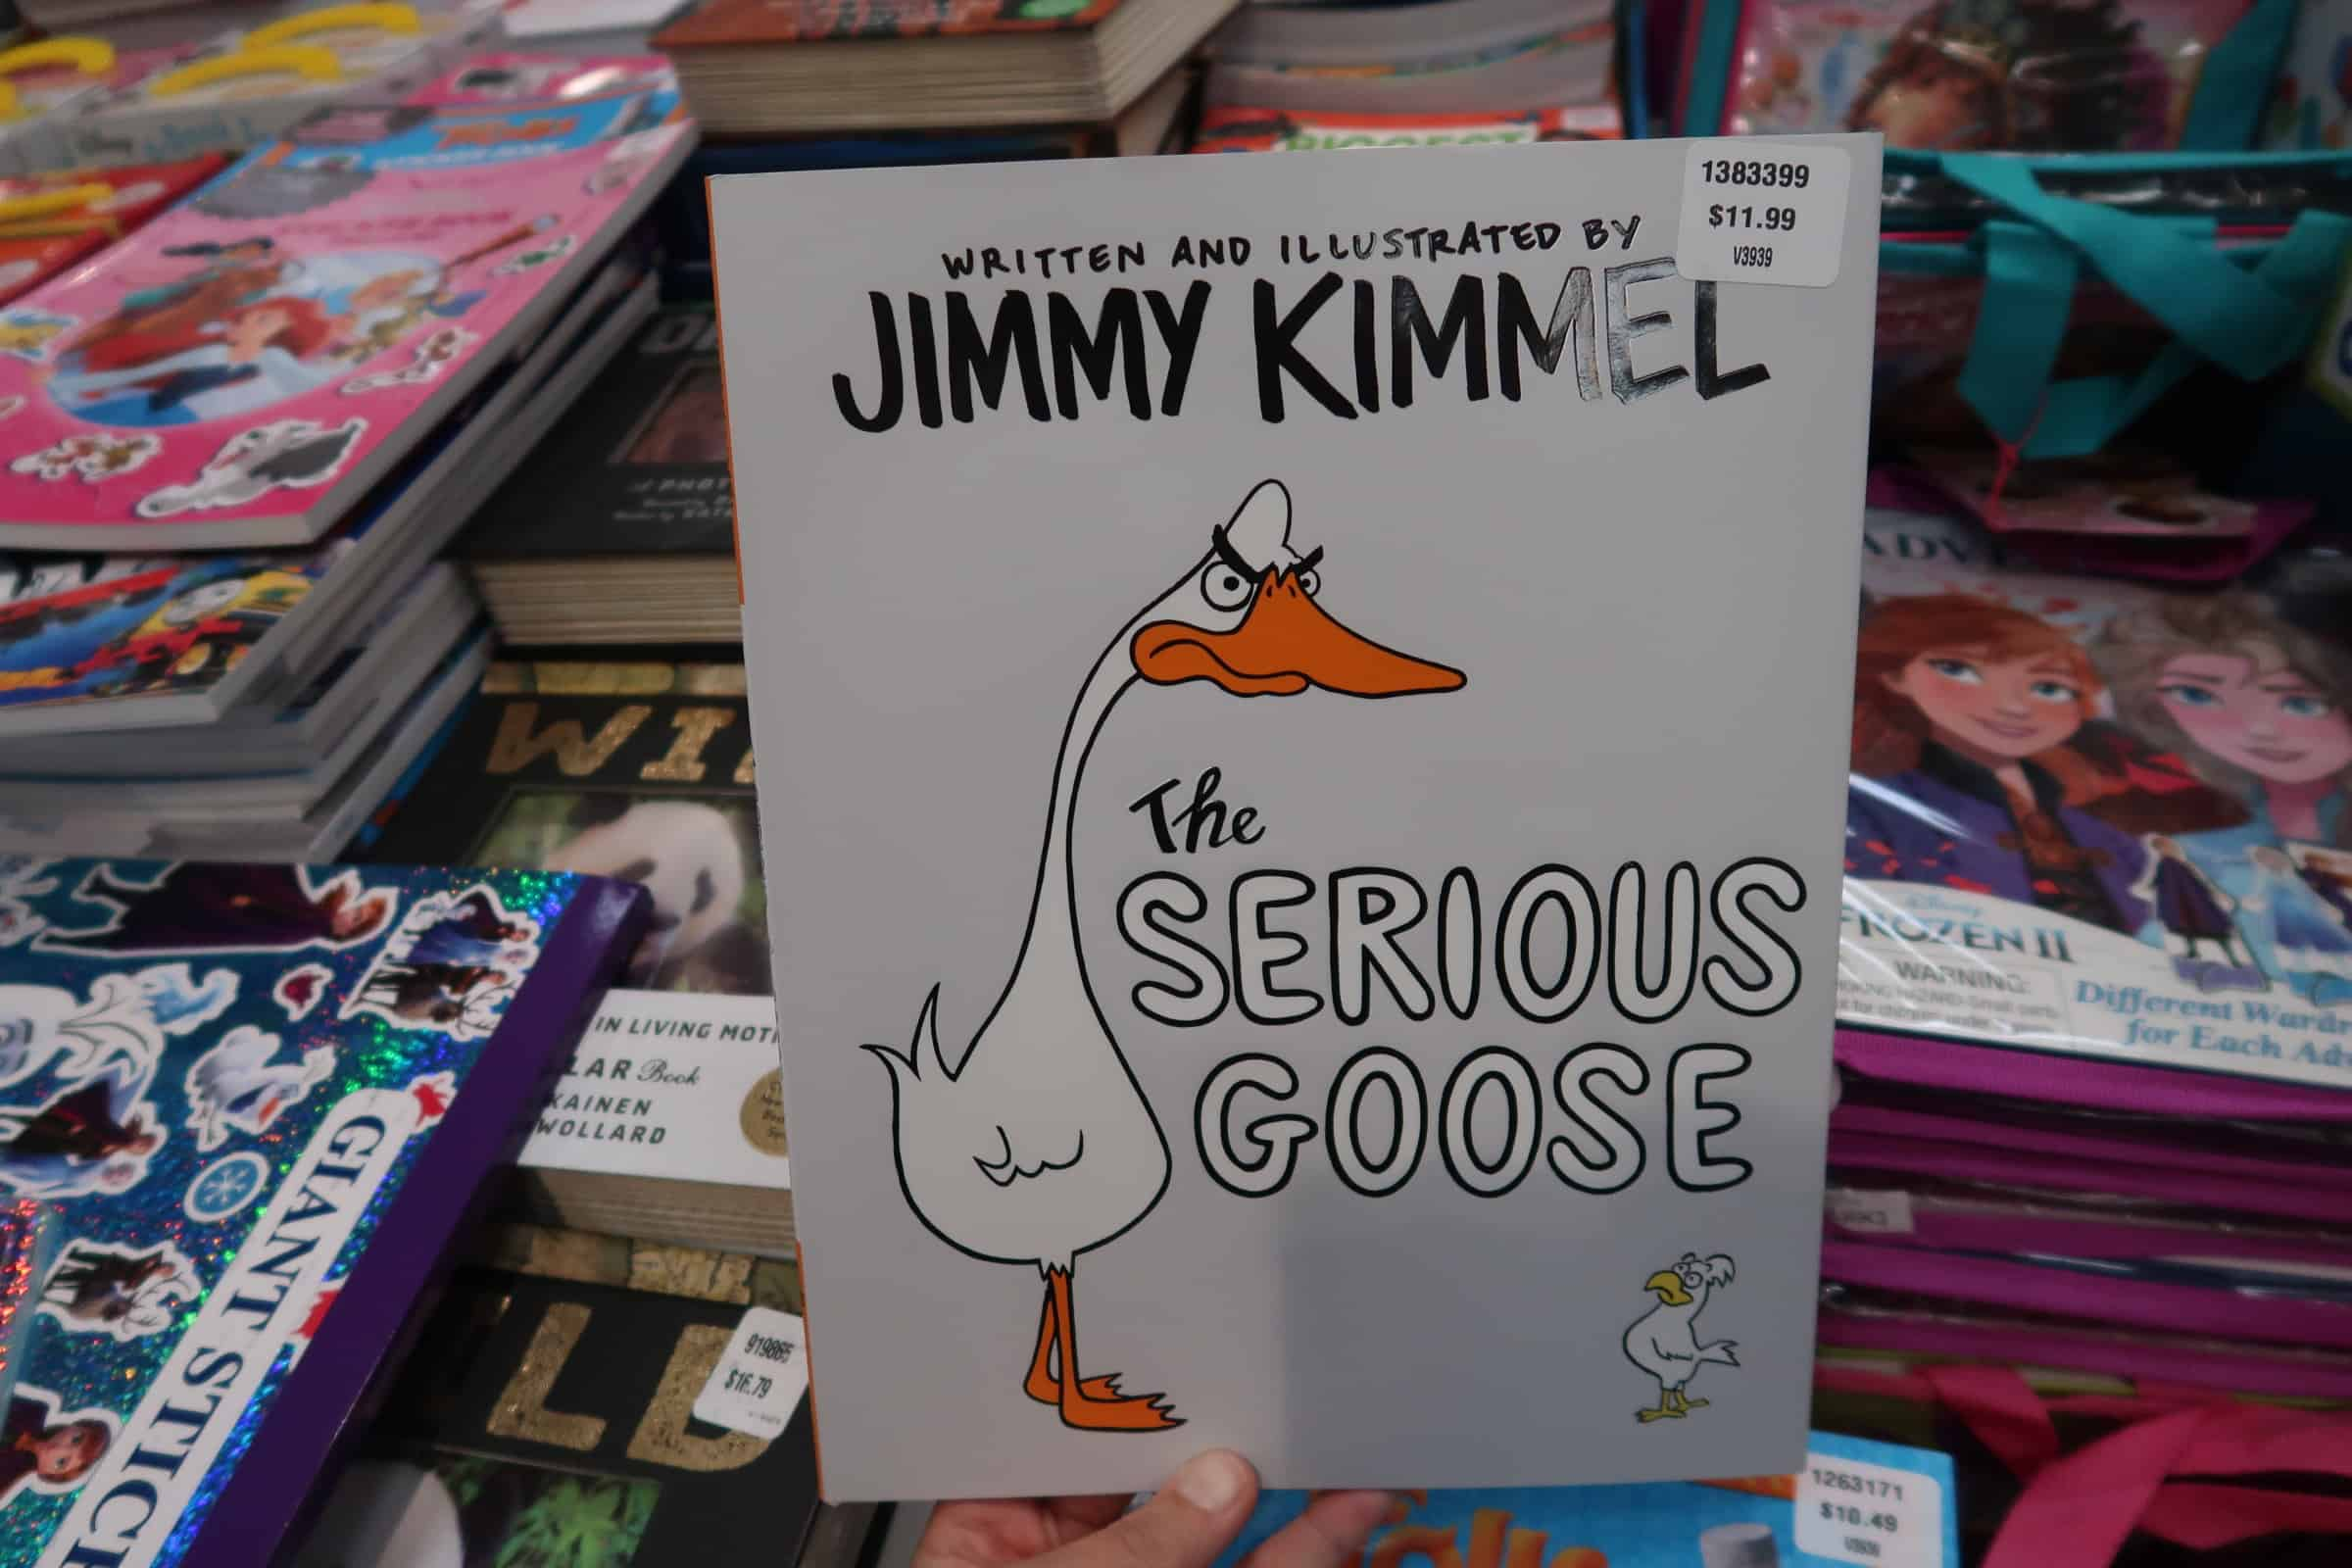 Jimmy Kimmel's Book The Serious Goose at Costco